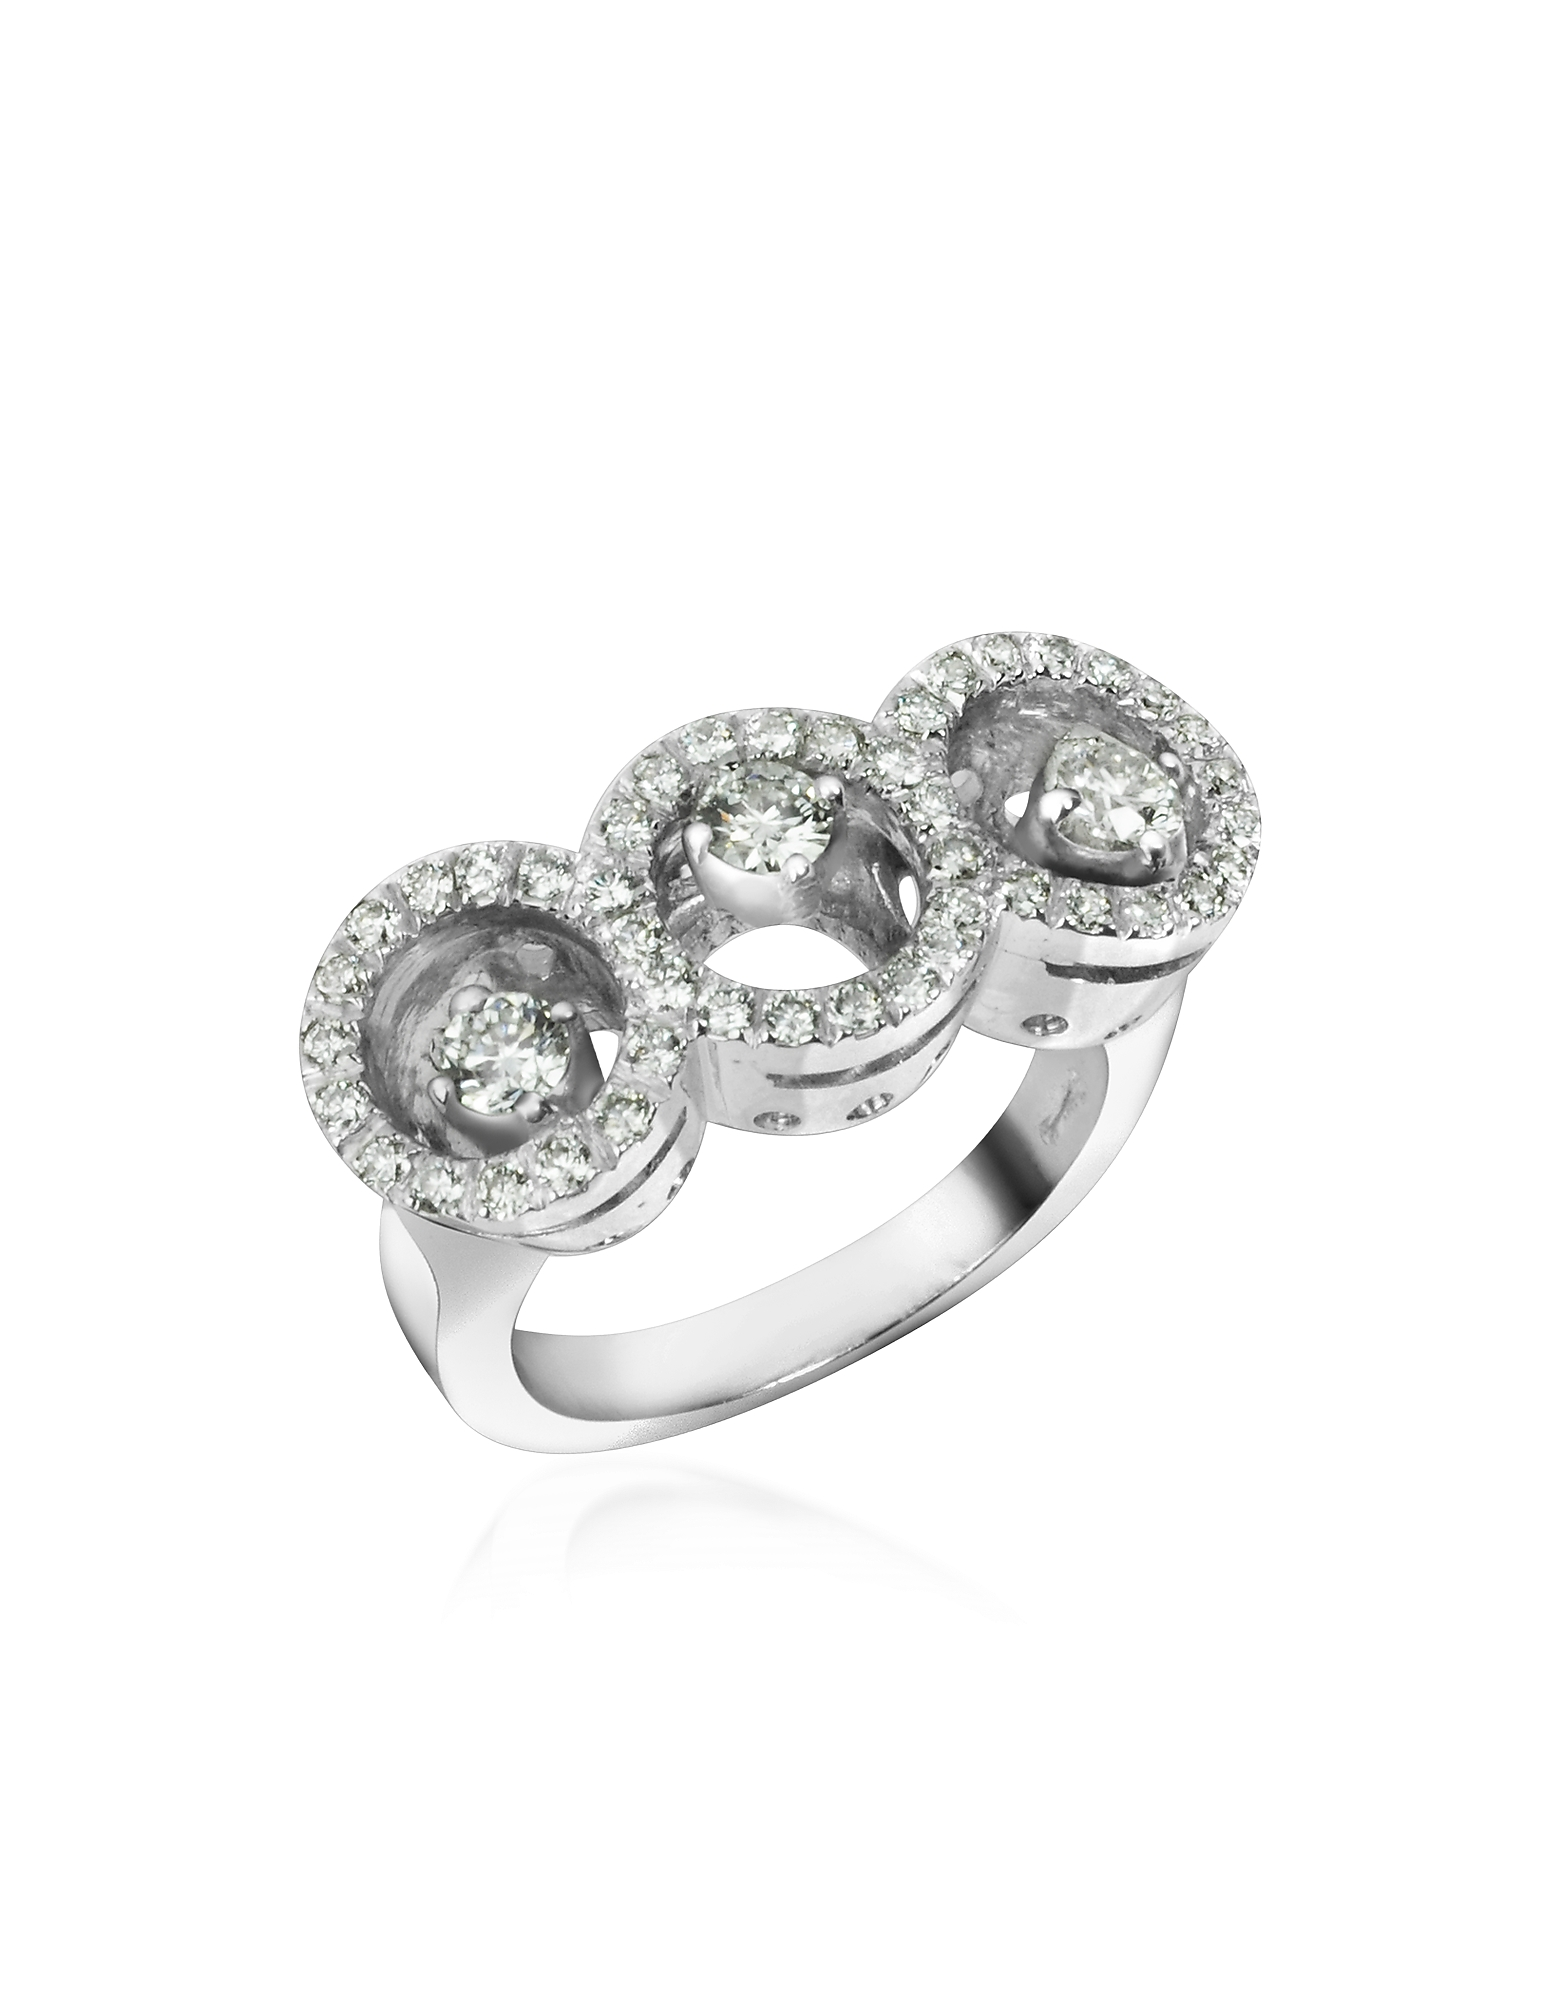 Incanto Royale Rings, 0.85 ctw Diamond 18K Gold Ring